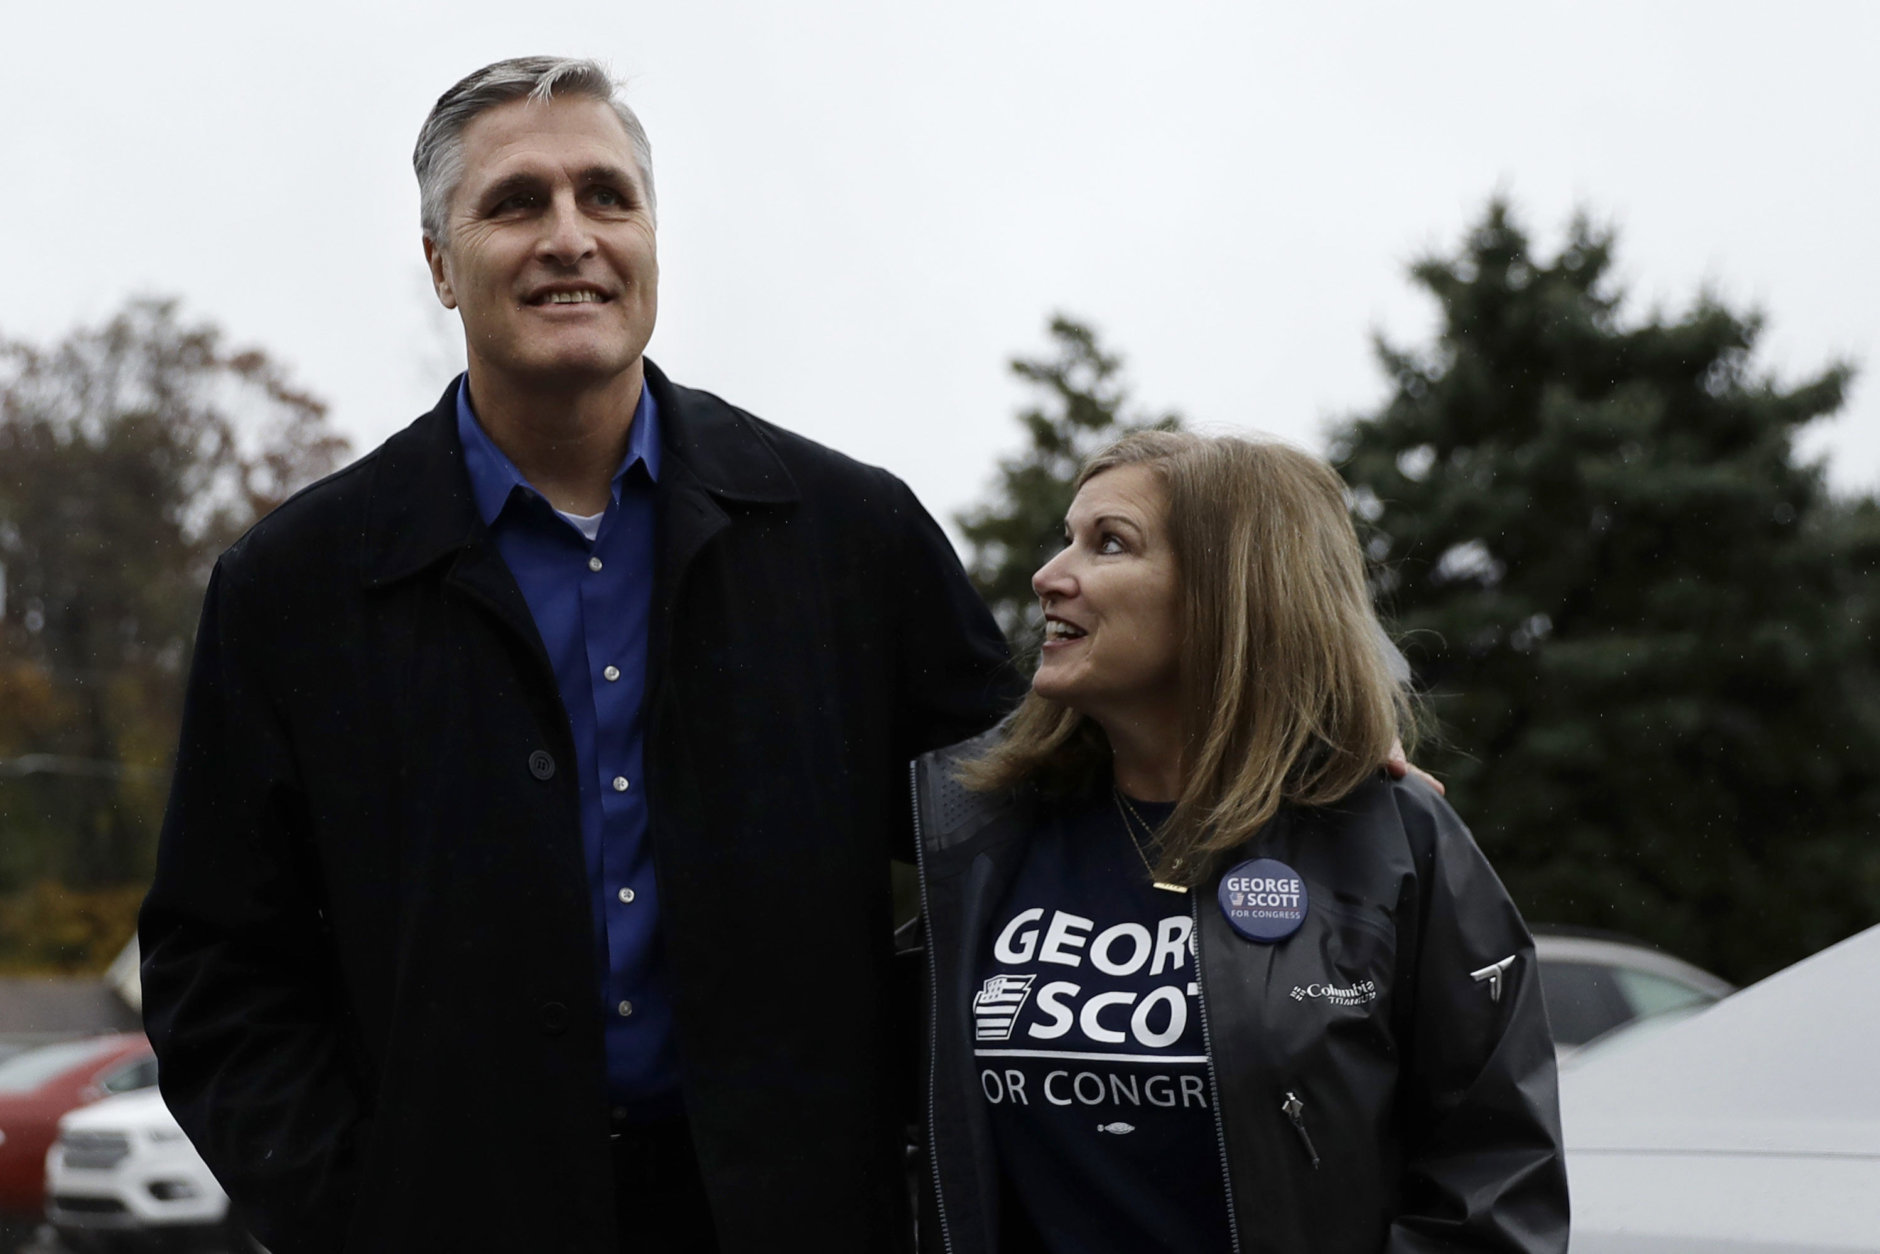 George Scott, left, Democratic candidate for Pennsylvania's 10th Congressional District, and his wife, Donna Scott, walk to vote at Celebration Community Church, Tuesday, Nov. 6, 2018, in Dillsburg, Pa. (AP Photo/Matt Slocum)